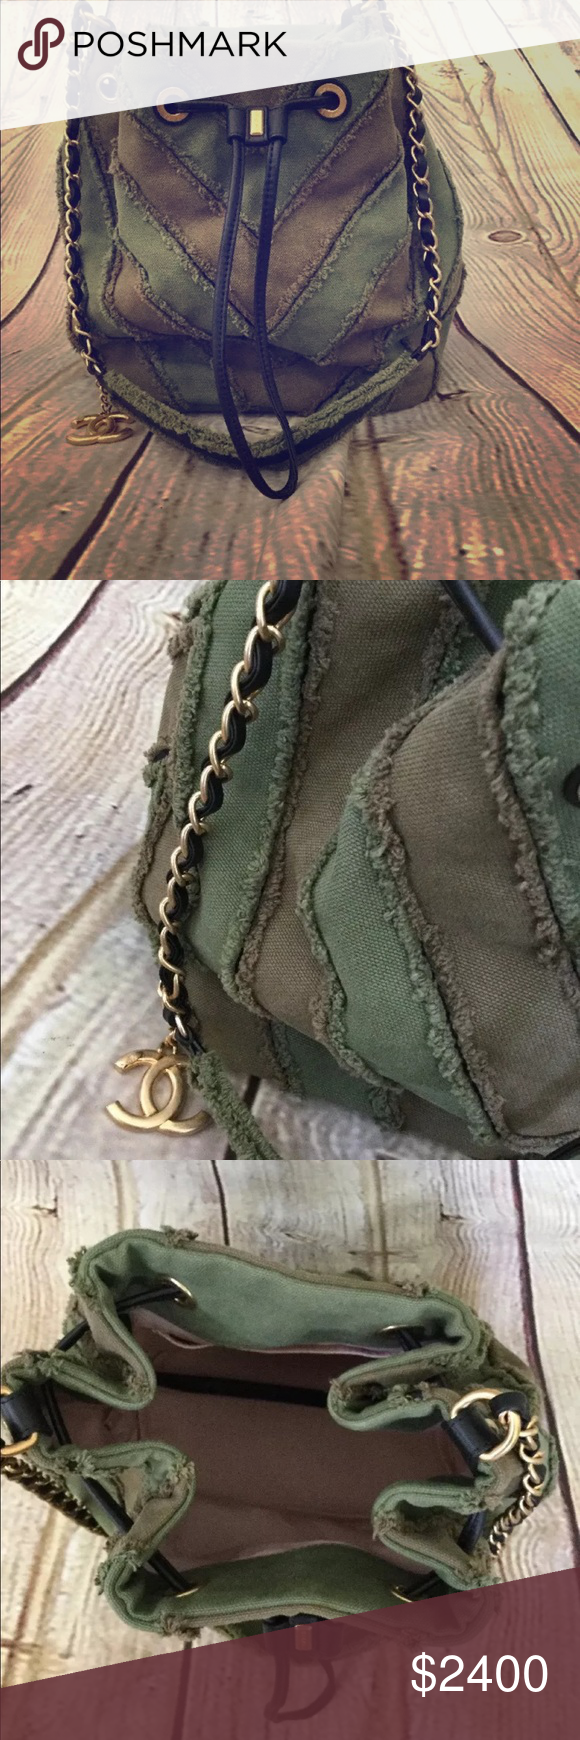 be137bb13109 Chanel green chevron patchwork bucket handbag Chanel 2017 canvas twist  bucket handbag. Gold antique hardware